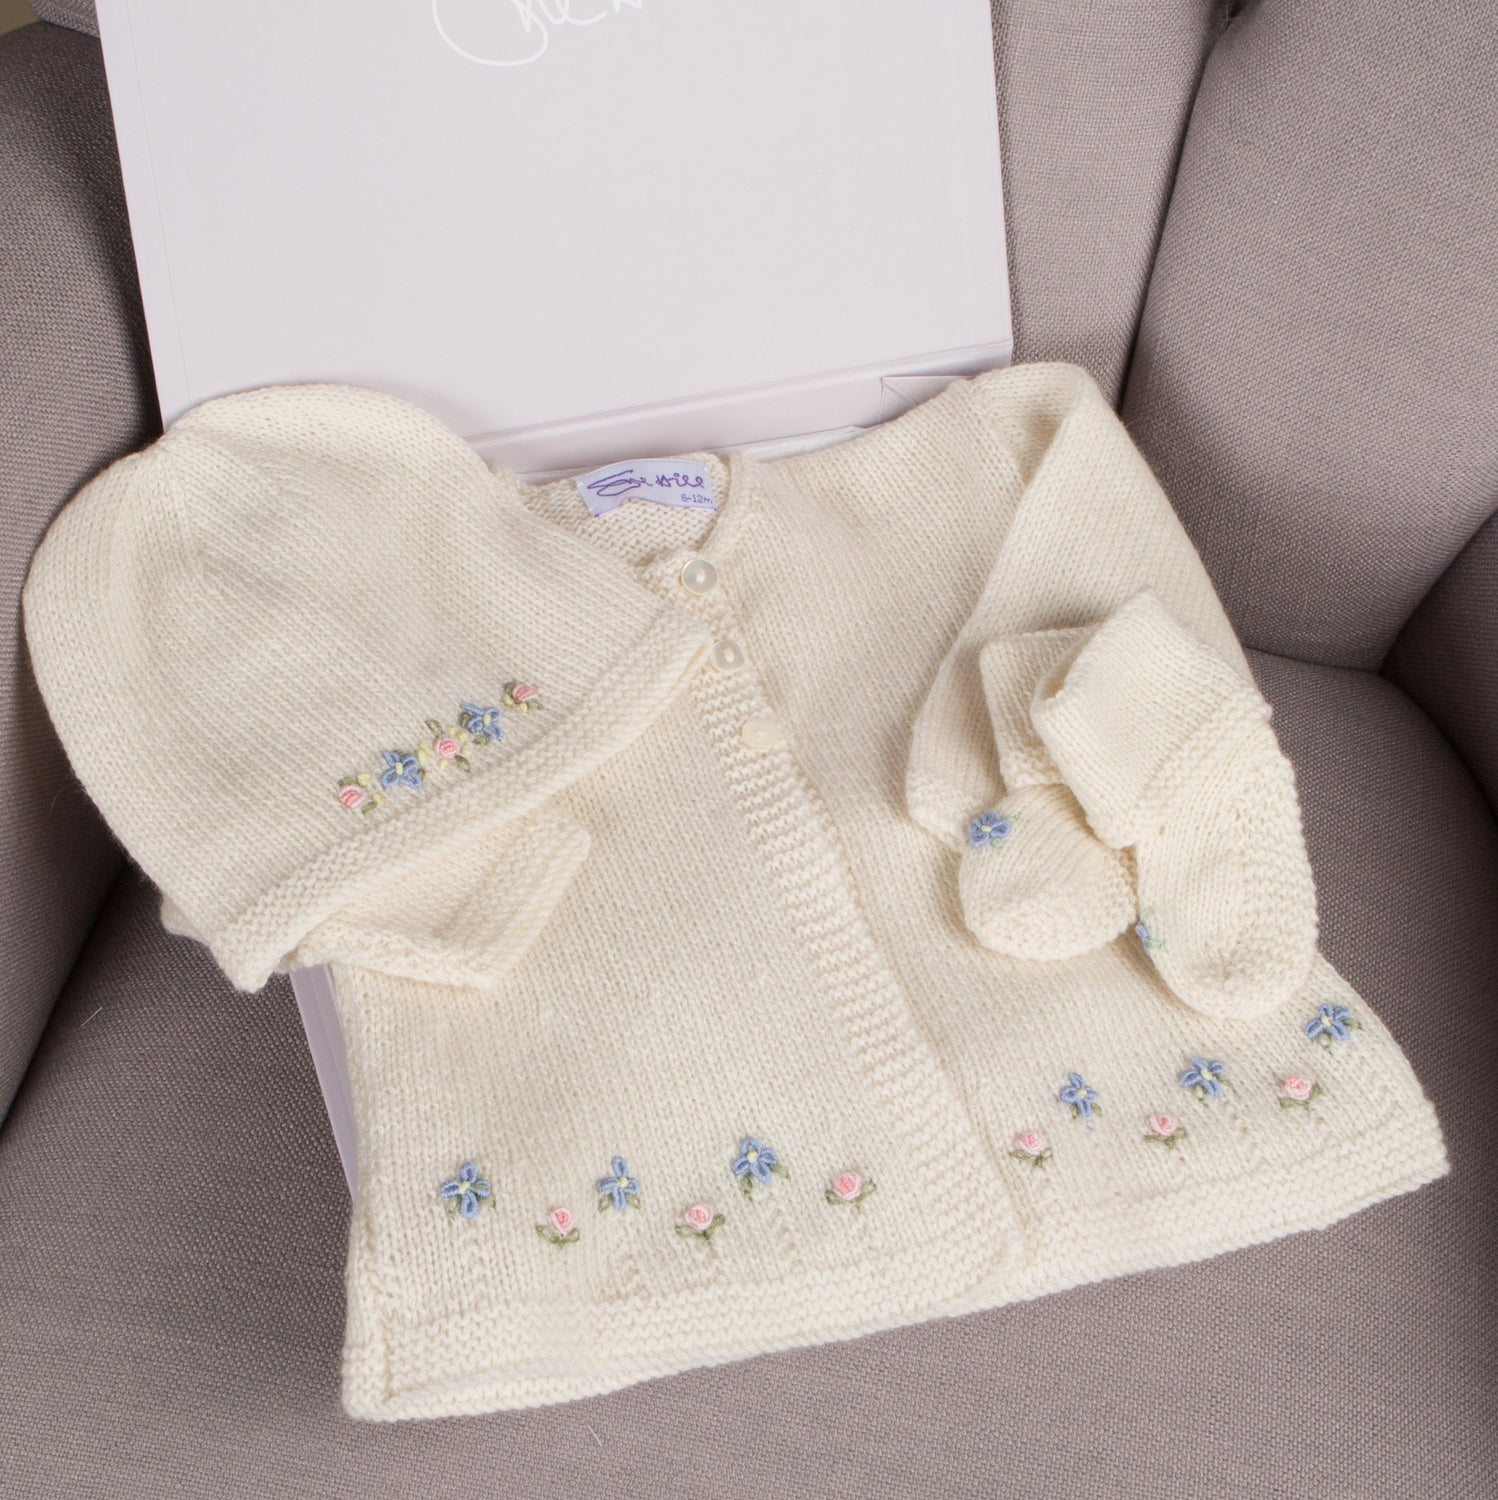 Sue Hill cashmere baby girl forget me not cardigan hat and booties baby gift set